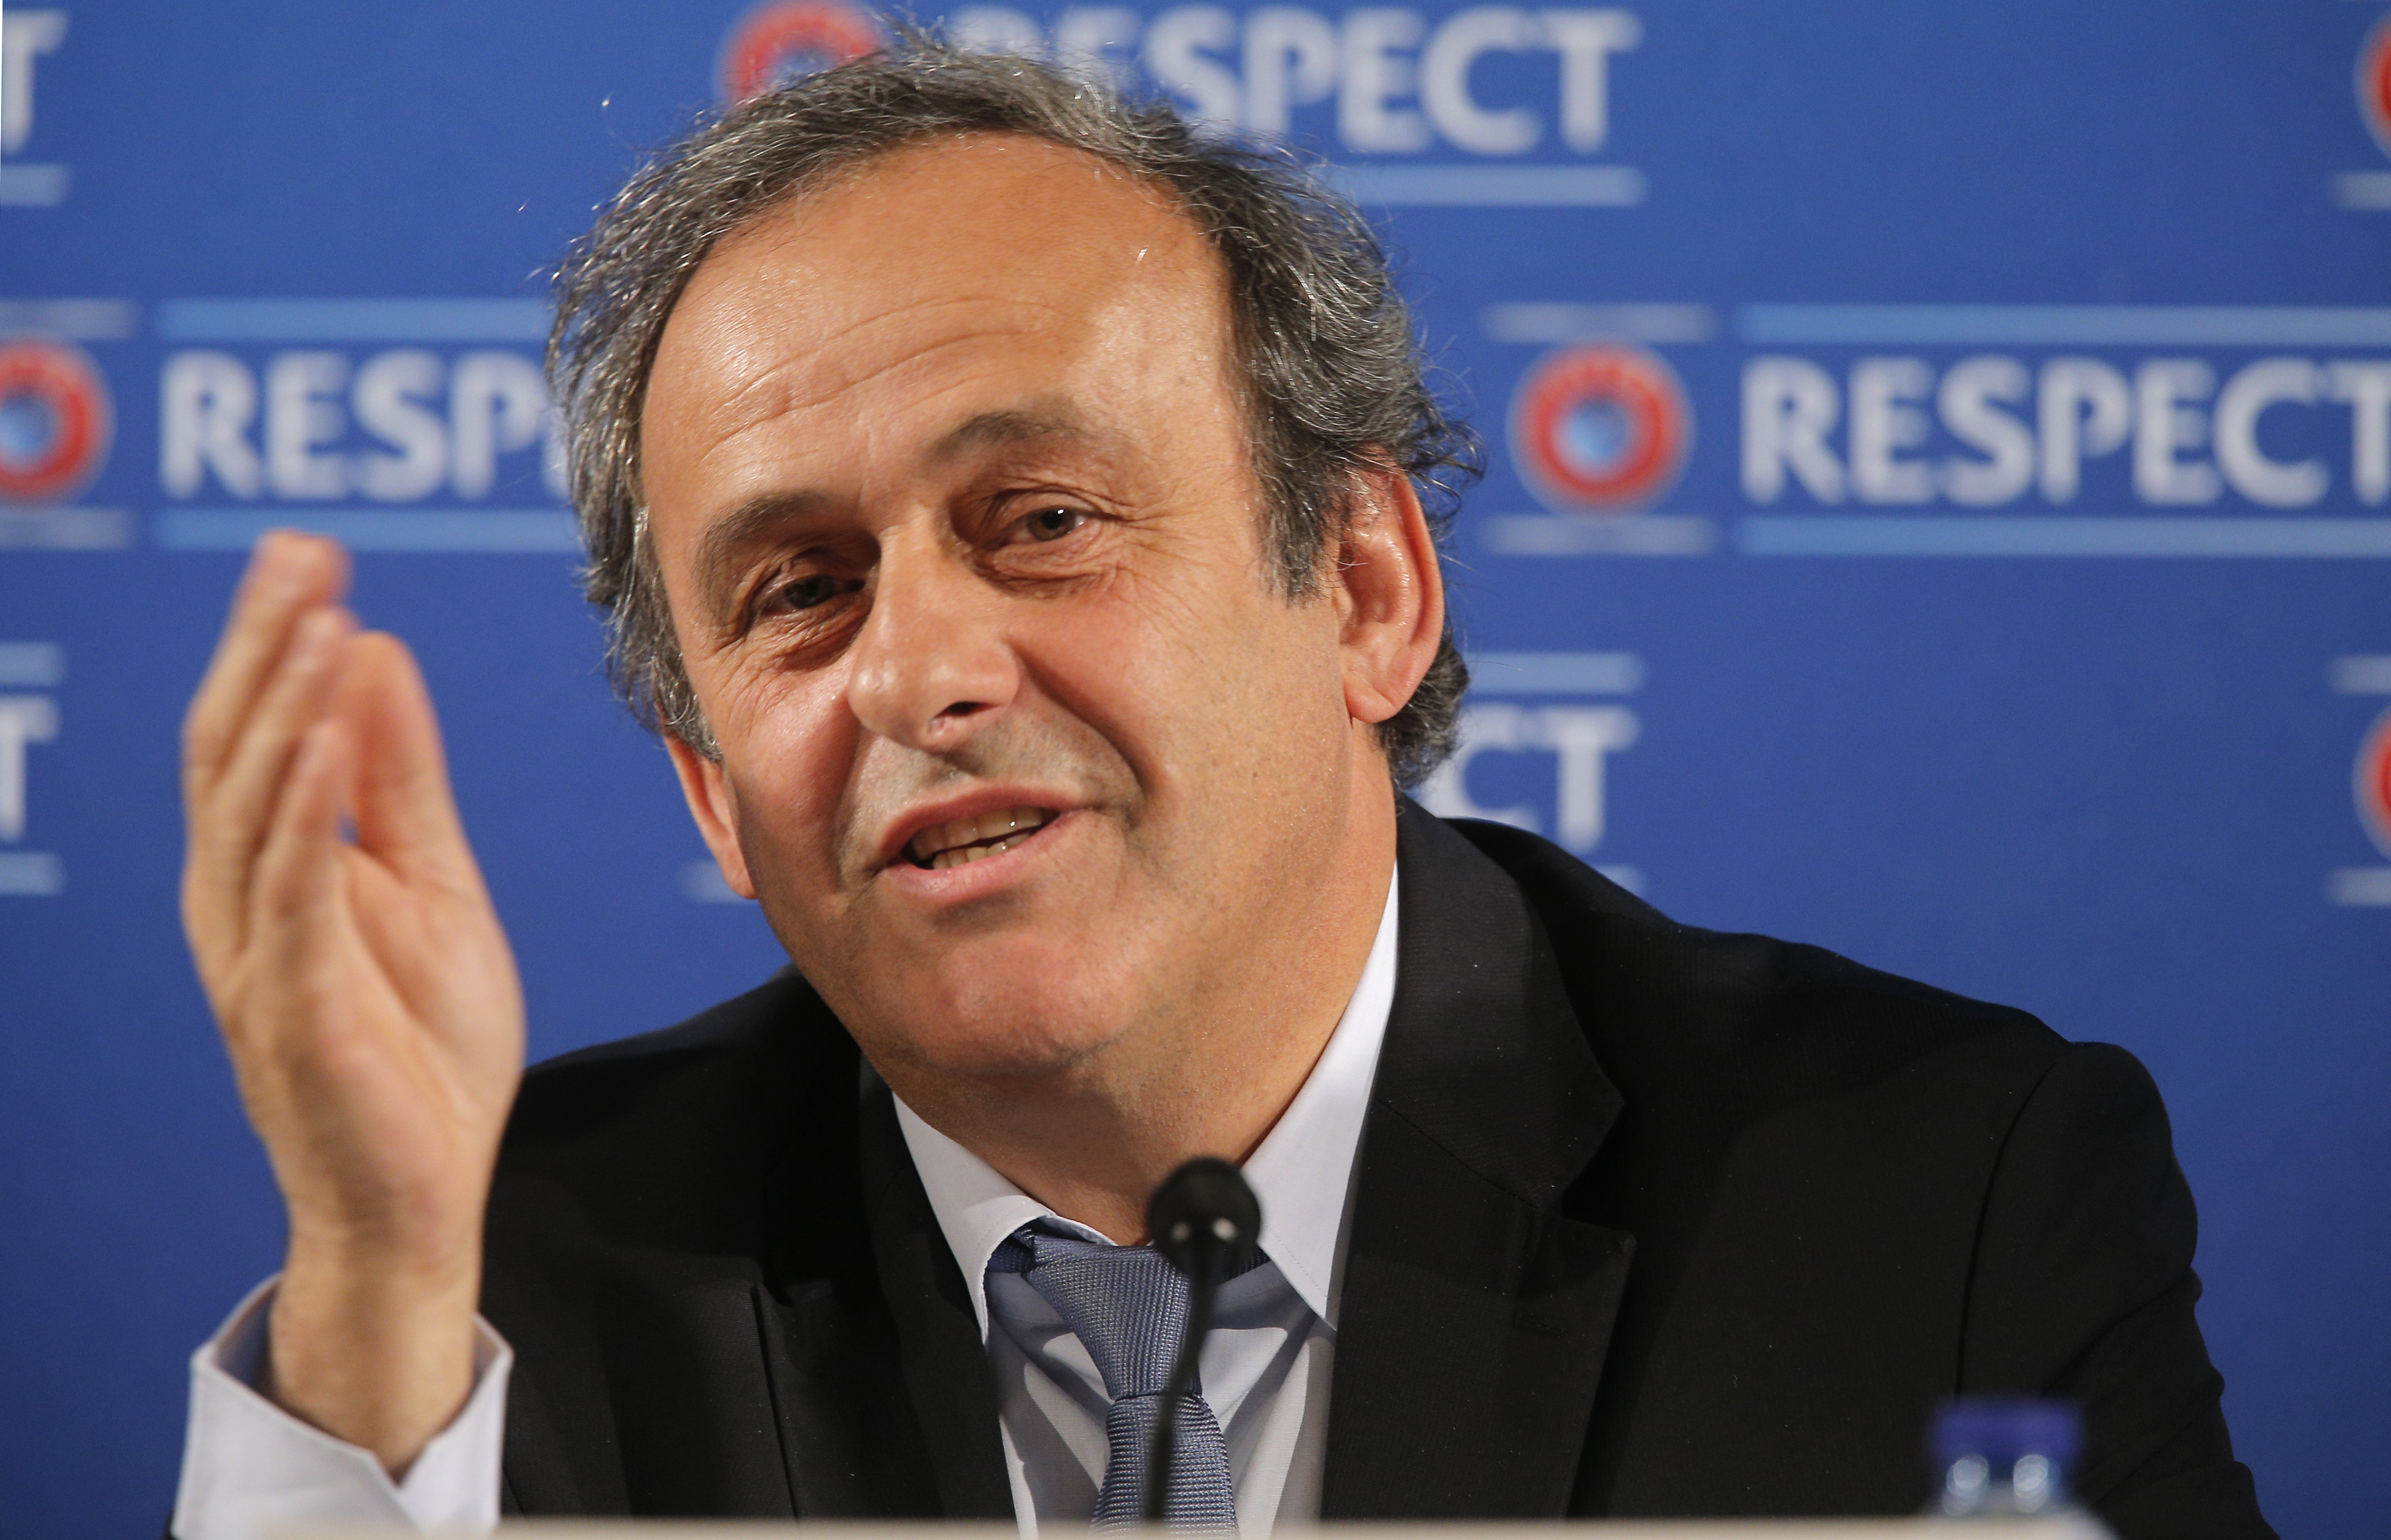 FILE - In this file photo dated Saturday, Feb 22, 2014, UEFA President Michel Platini gestures during a press conference, one day prior to the UEFA EURO 2016 qualifying draw at the Acropolis Convention Centre in Nice, southeastern France. Seven men are in the running to replace Sepp Blatter as FIFA president, with Michel Platiniu0092s candidature pending because of his suspension from soccer.   (AP Photo/Lionel Cironneau, FILE)